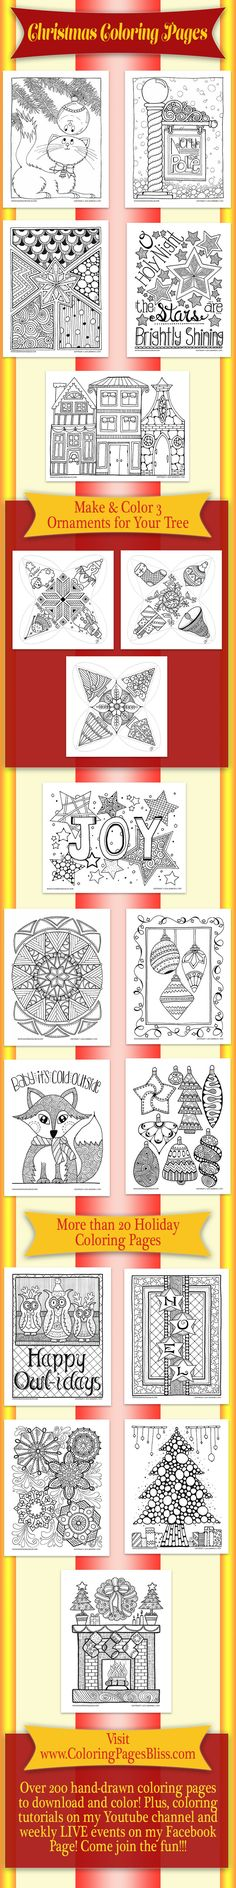 Christmas Coloring Pages Hand Drawn By Artist Jennifer Stay Come See Over 20 Downloadable